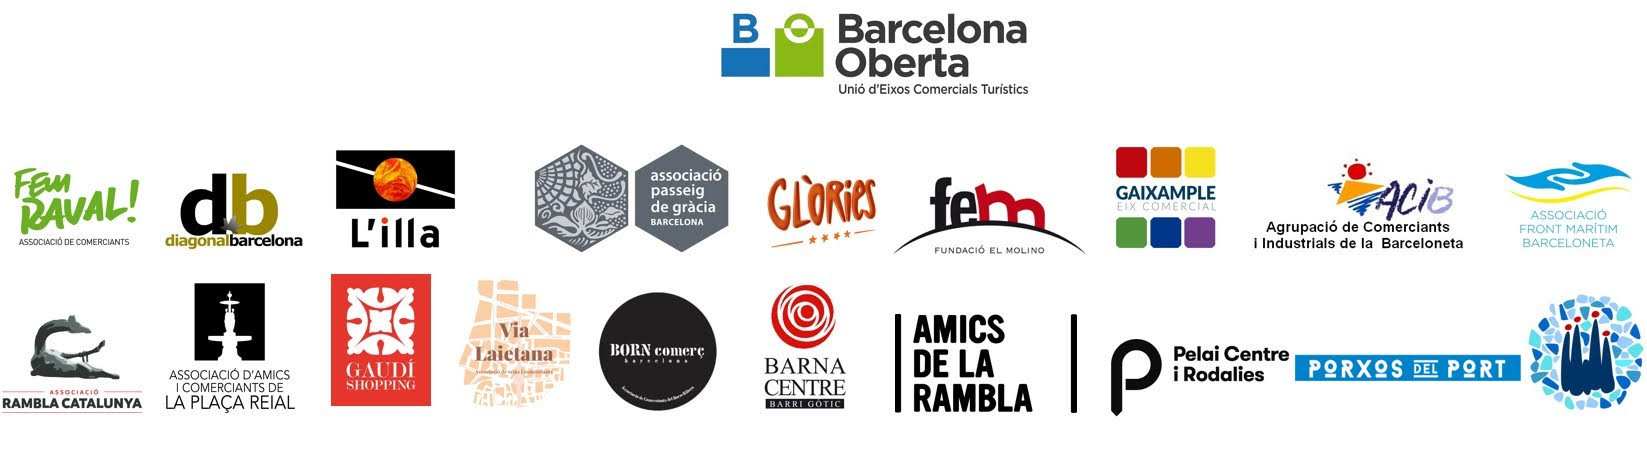 BARCELONA OBERTA CONDEMNES THE INCIDENTS OF HELPING TO THE CENTER I REQUESTS DIALOGUE AND ENTITY GOVERNMENTS AND INSTITUTIONS | Barcelona Oberta